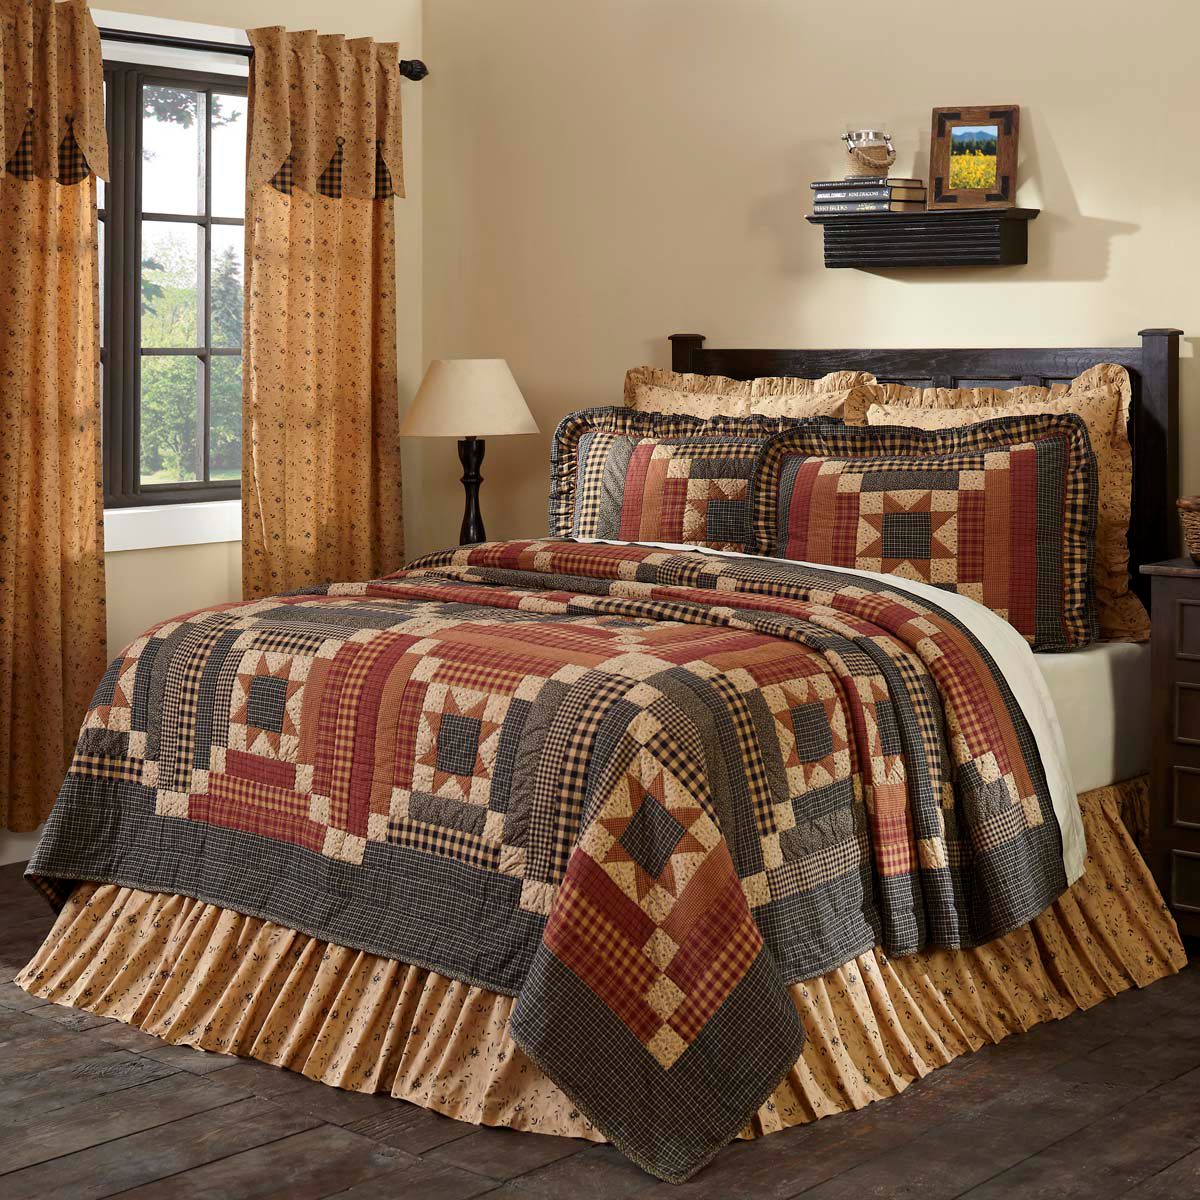 Twin Bed Quilt Batting